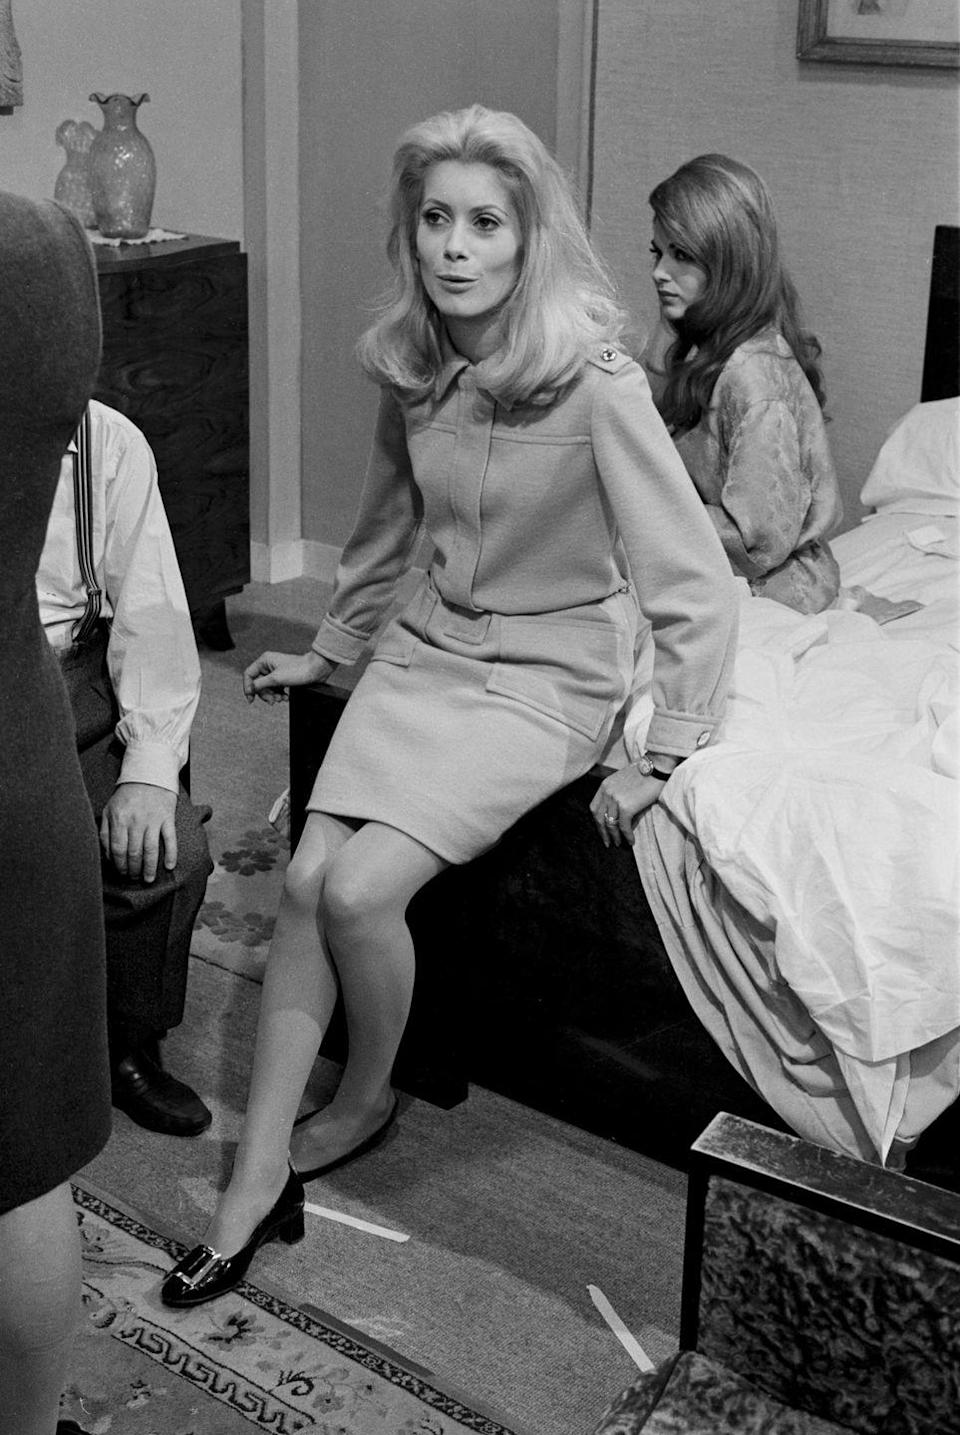 "<p>Catherine Deneuve's patent leather Roger Vivier buckle shoes are so iconic, they were <a href=""https://www.wsj.com/articles/back-by-popular-demand-the-shoes-catherine-deneuve-wore-in-belle-de-jour-1501782795"" rel=""nofollow noopener"" target=""_blank"" data-ylk=""slk:re-issued in 2017"" class=""link rapid-noclick-resp"">re-issued in 2017</a> in honor of the movie's 50th anniversary.</p>"